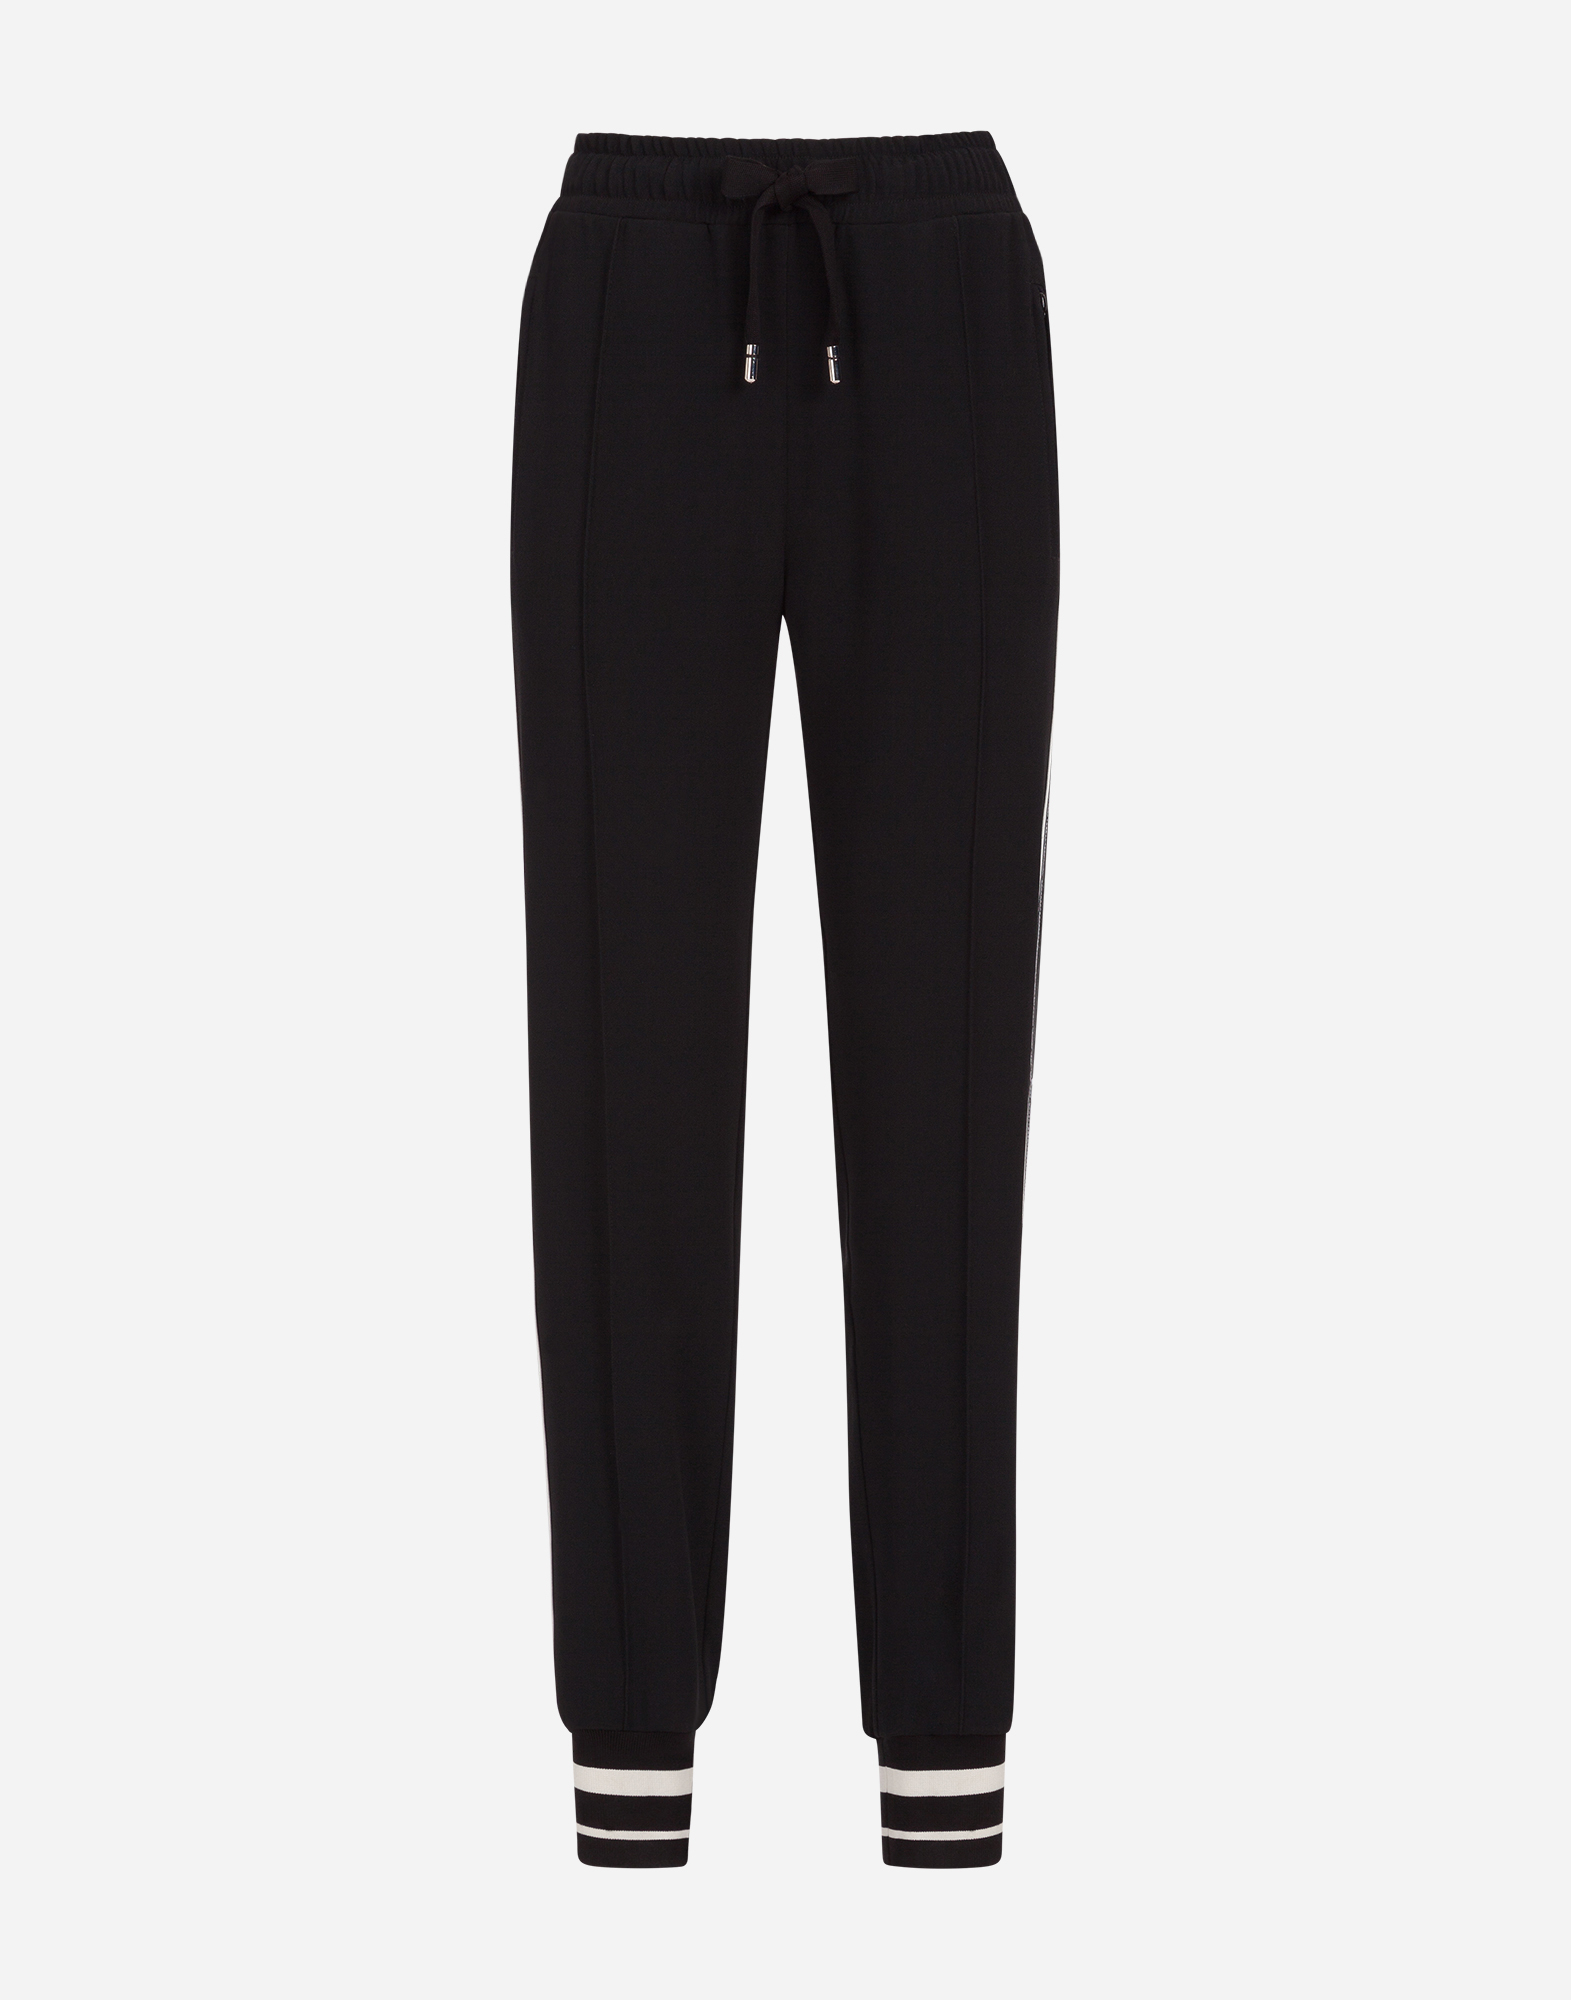 Dolce&Gabbana JOGGING PANTS IN CADY